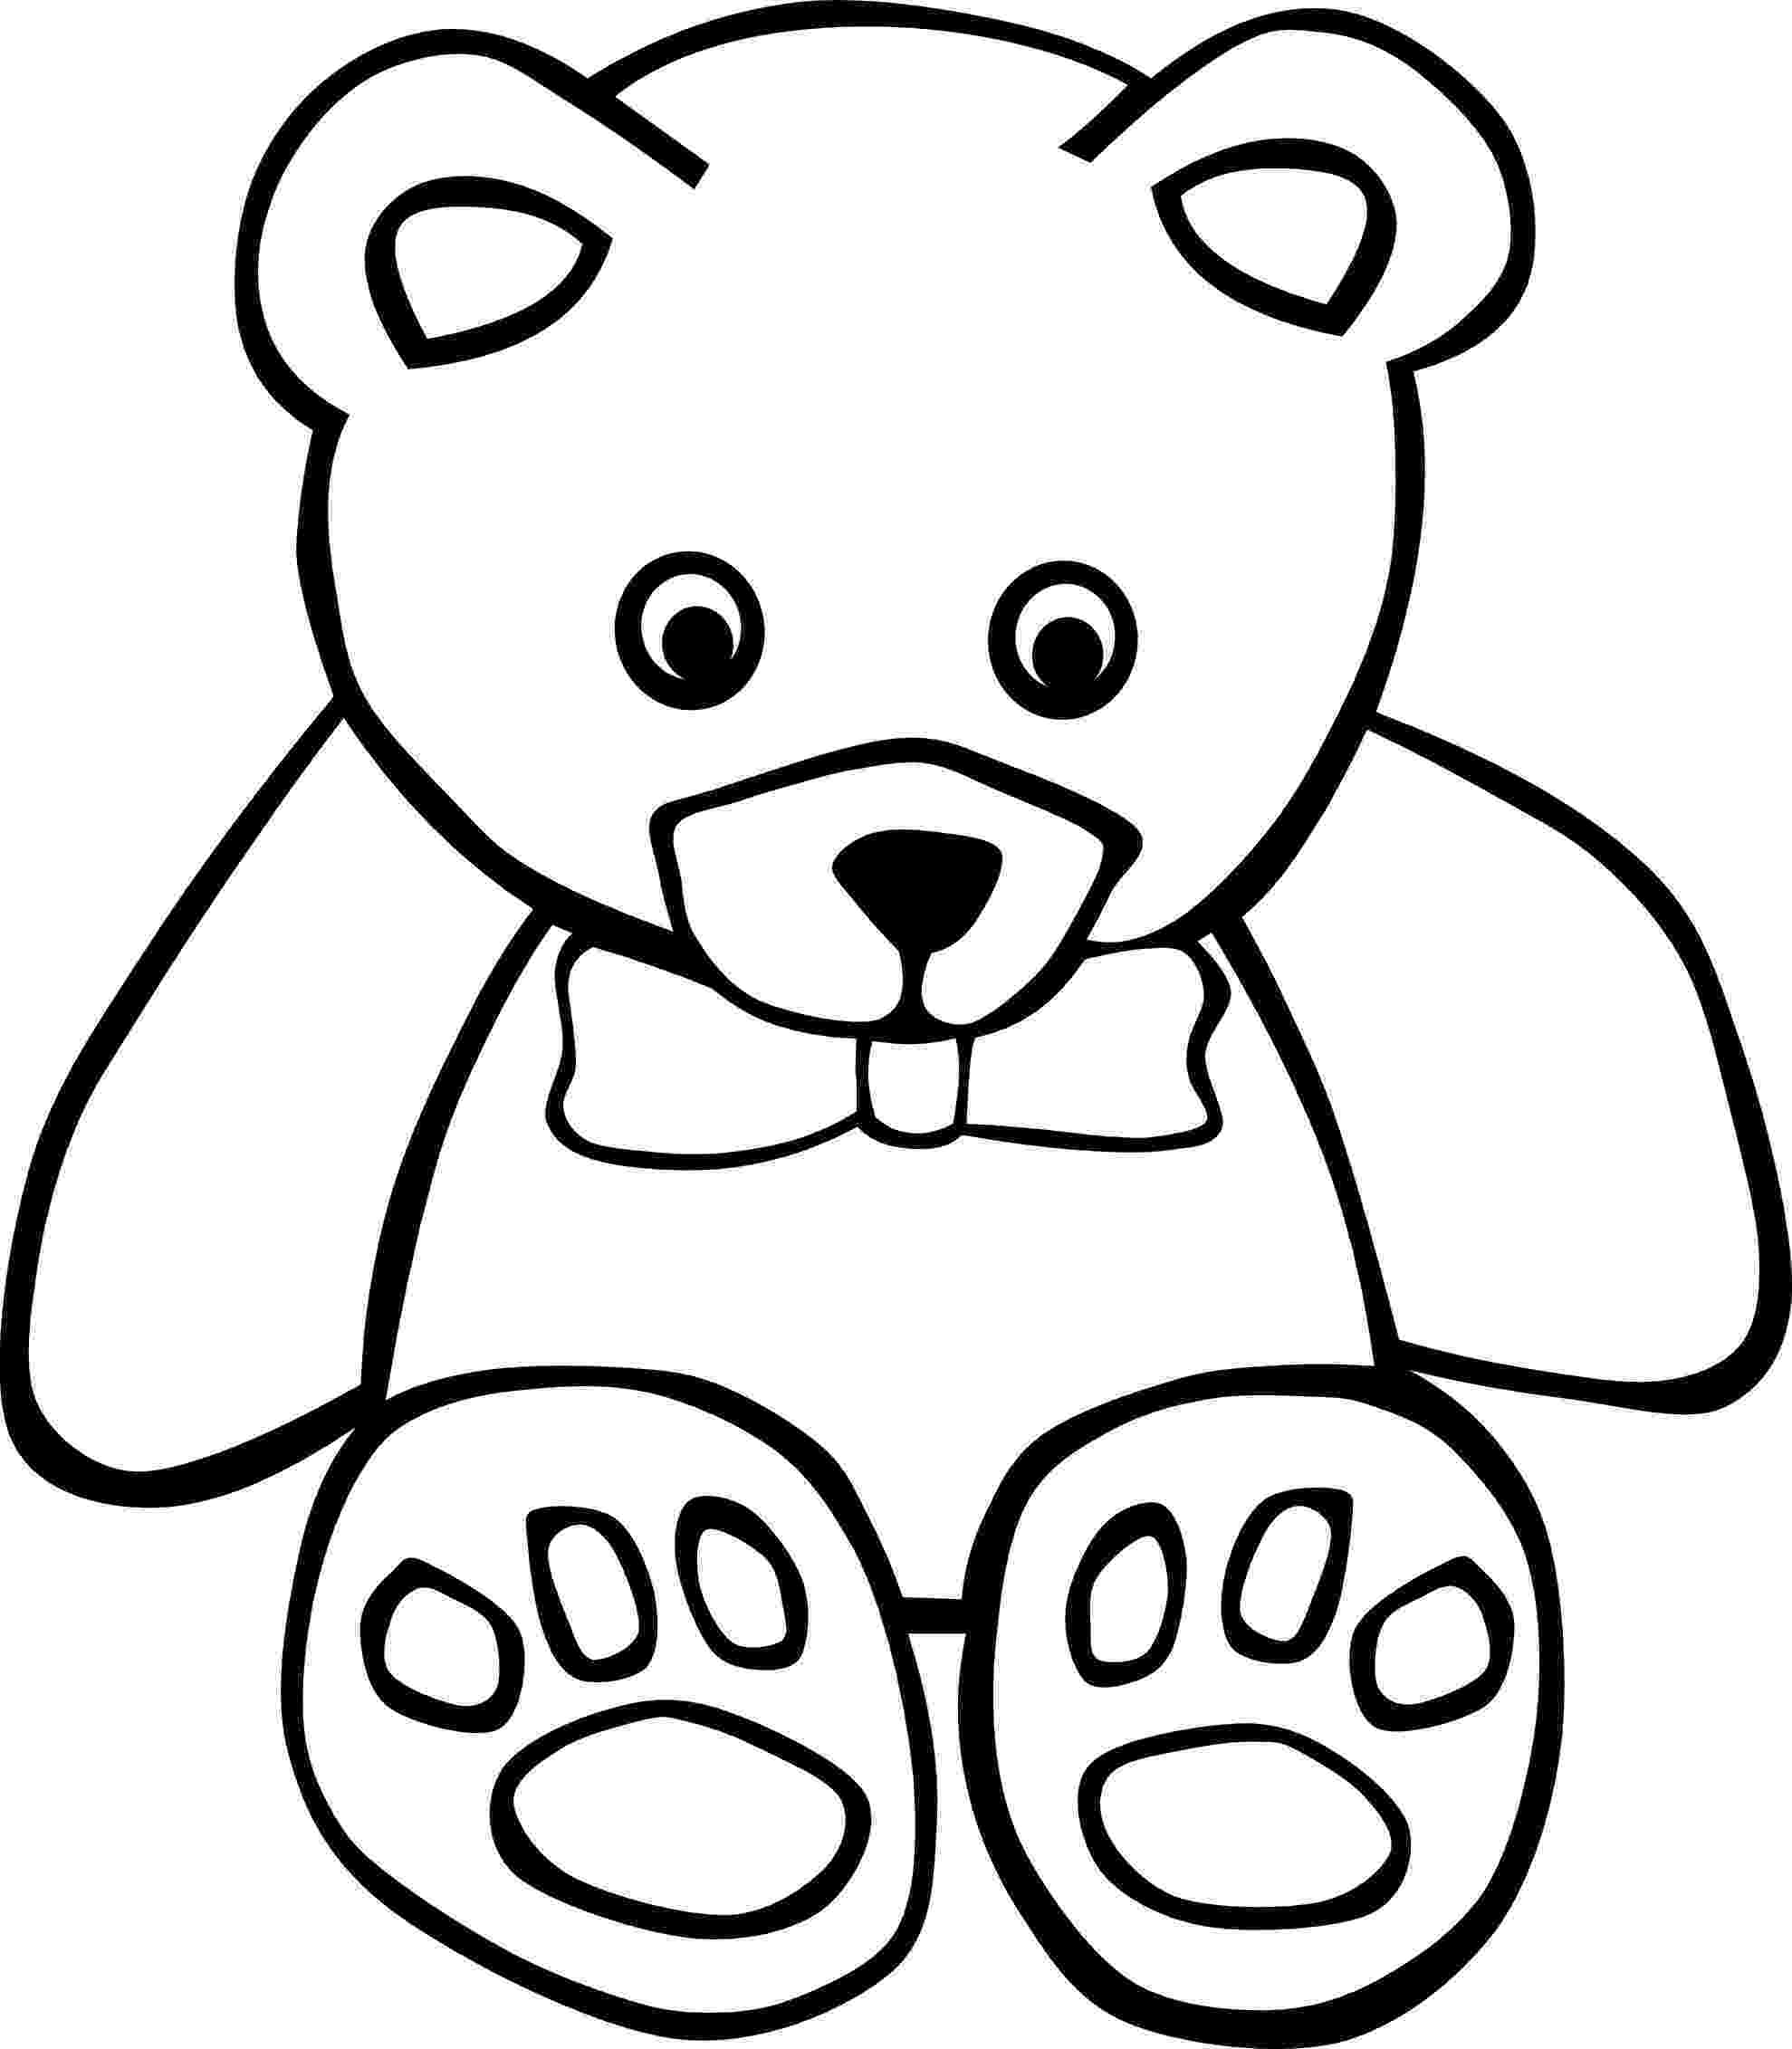 bear pictures to color printable teddy bear coloring pages for kids cool2bkids to color bear pictures